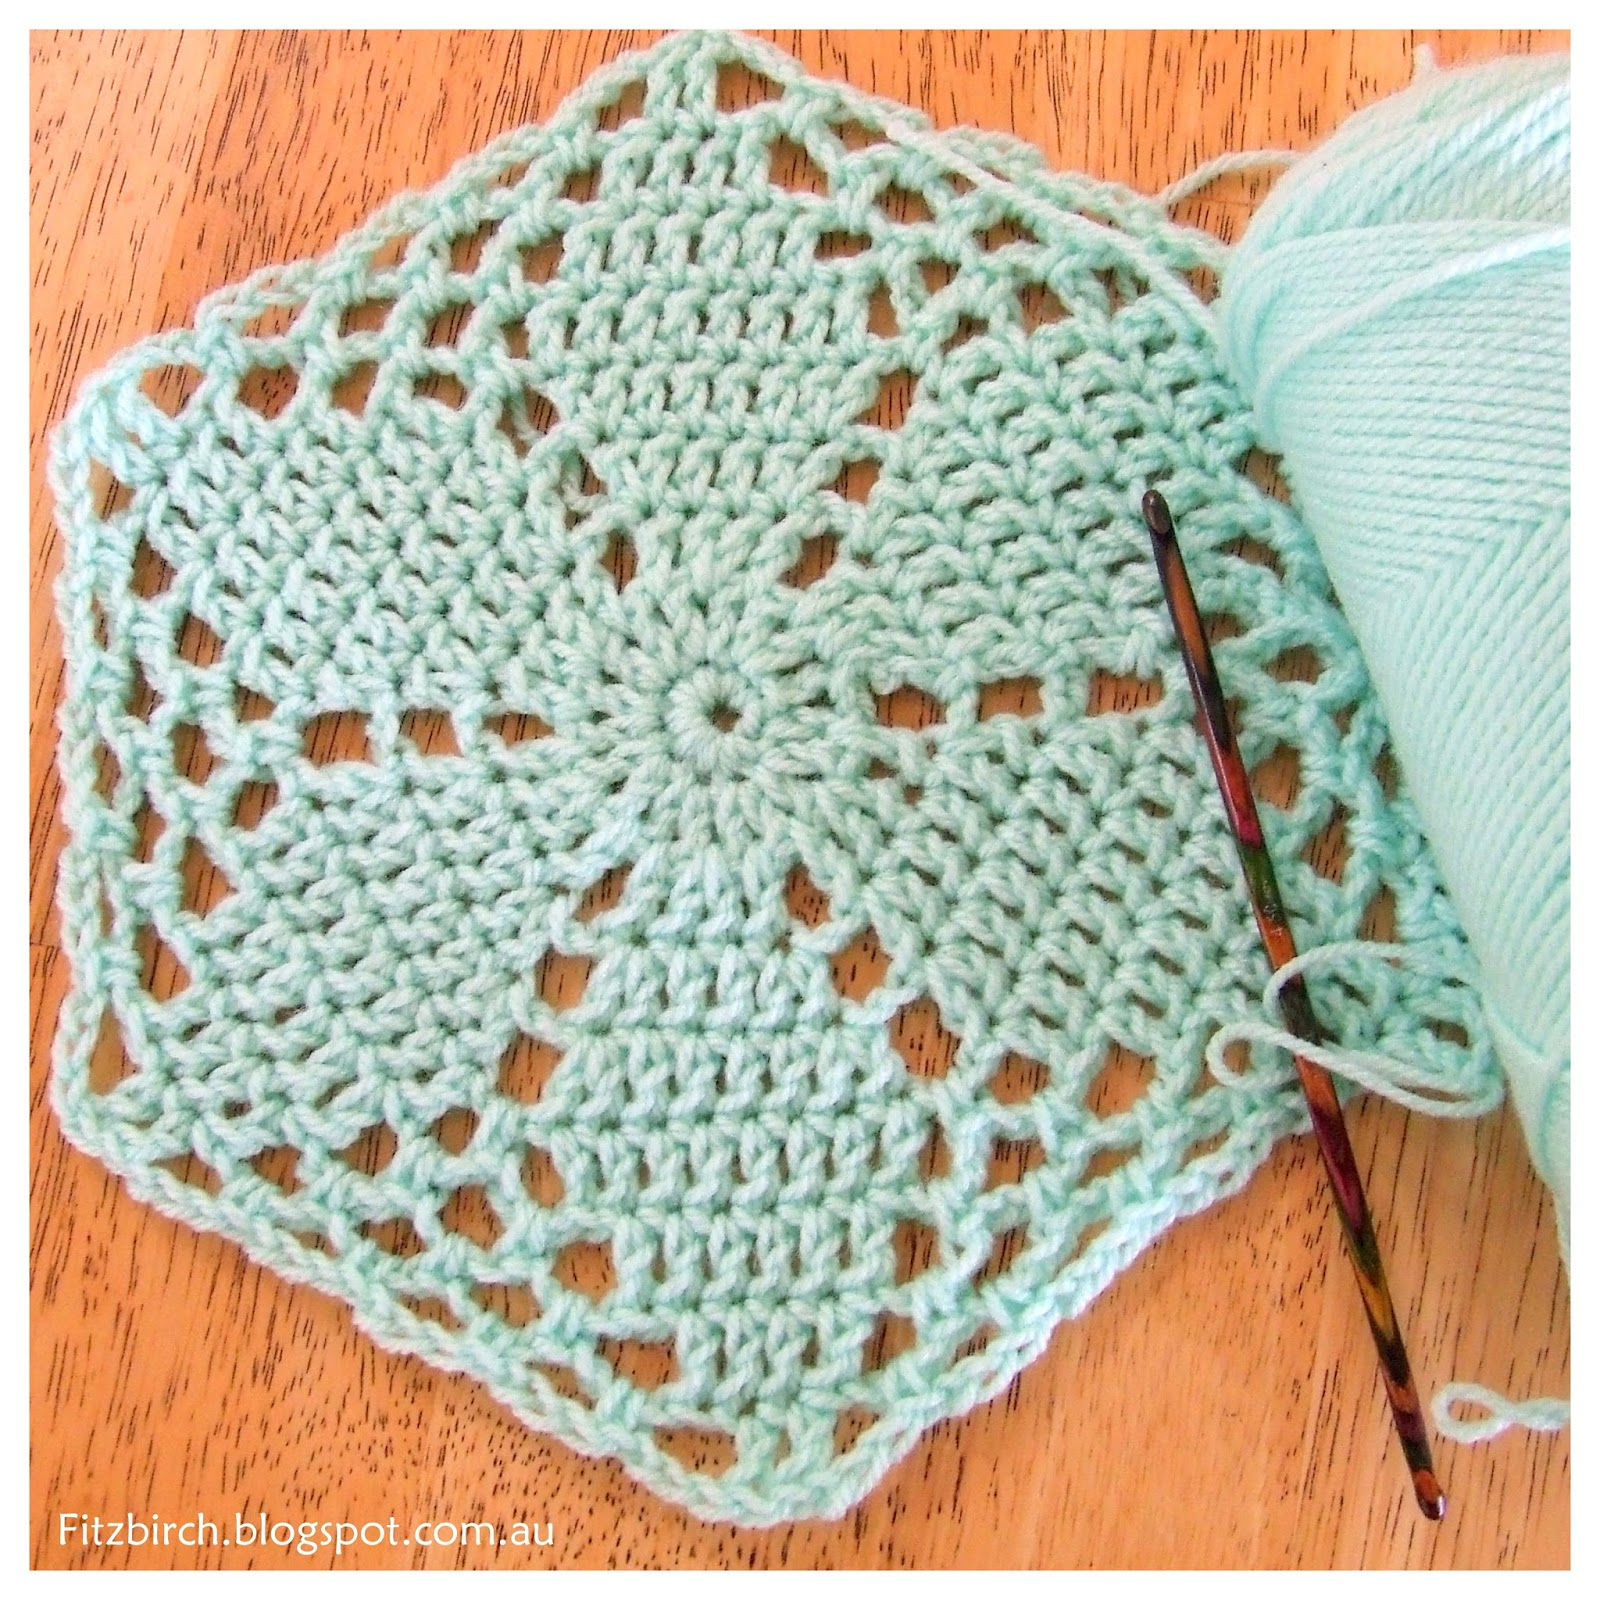 FitzBirch Crafts: Favourite Free Crochet Hexagon Patterns